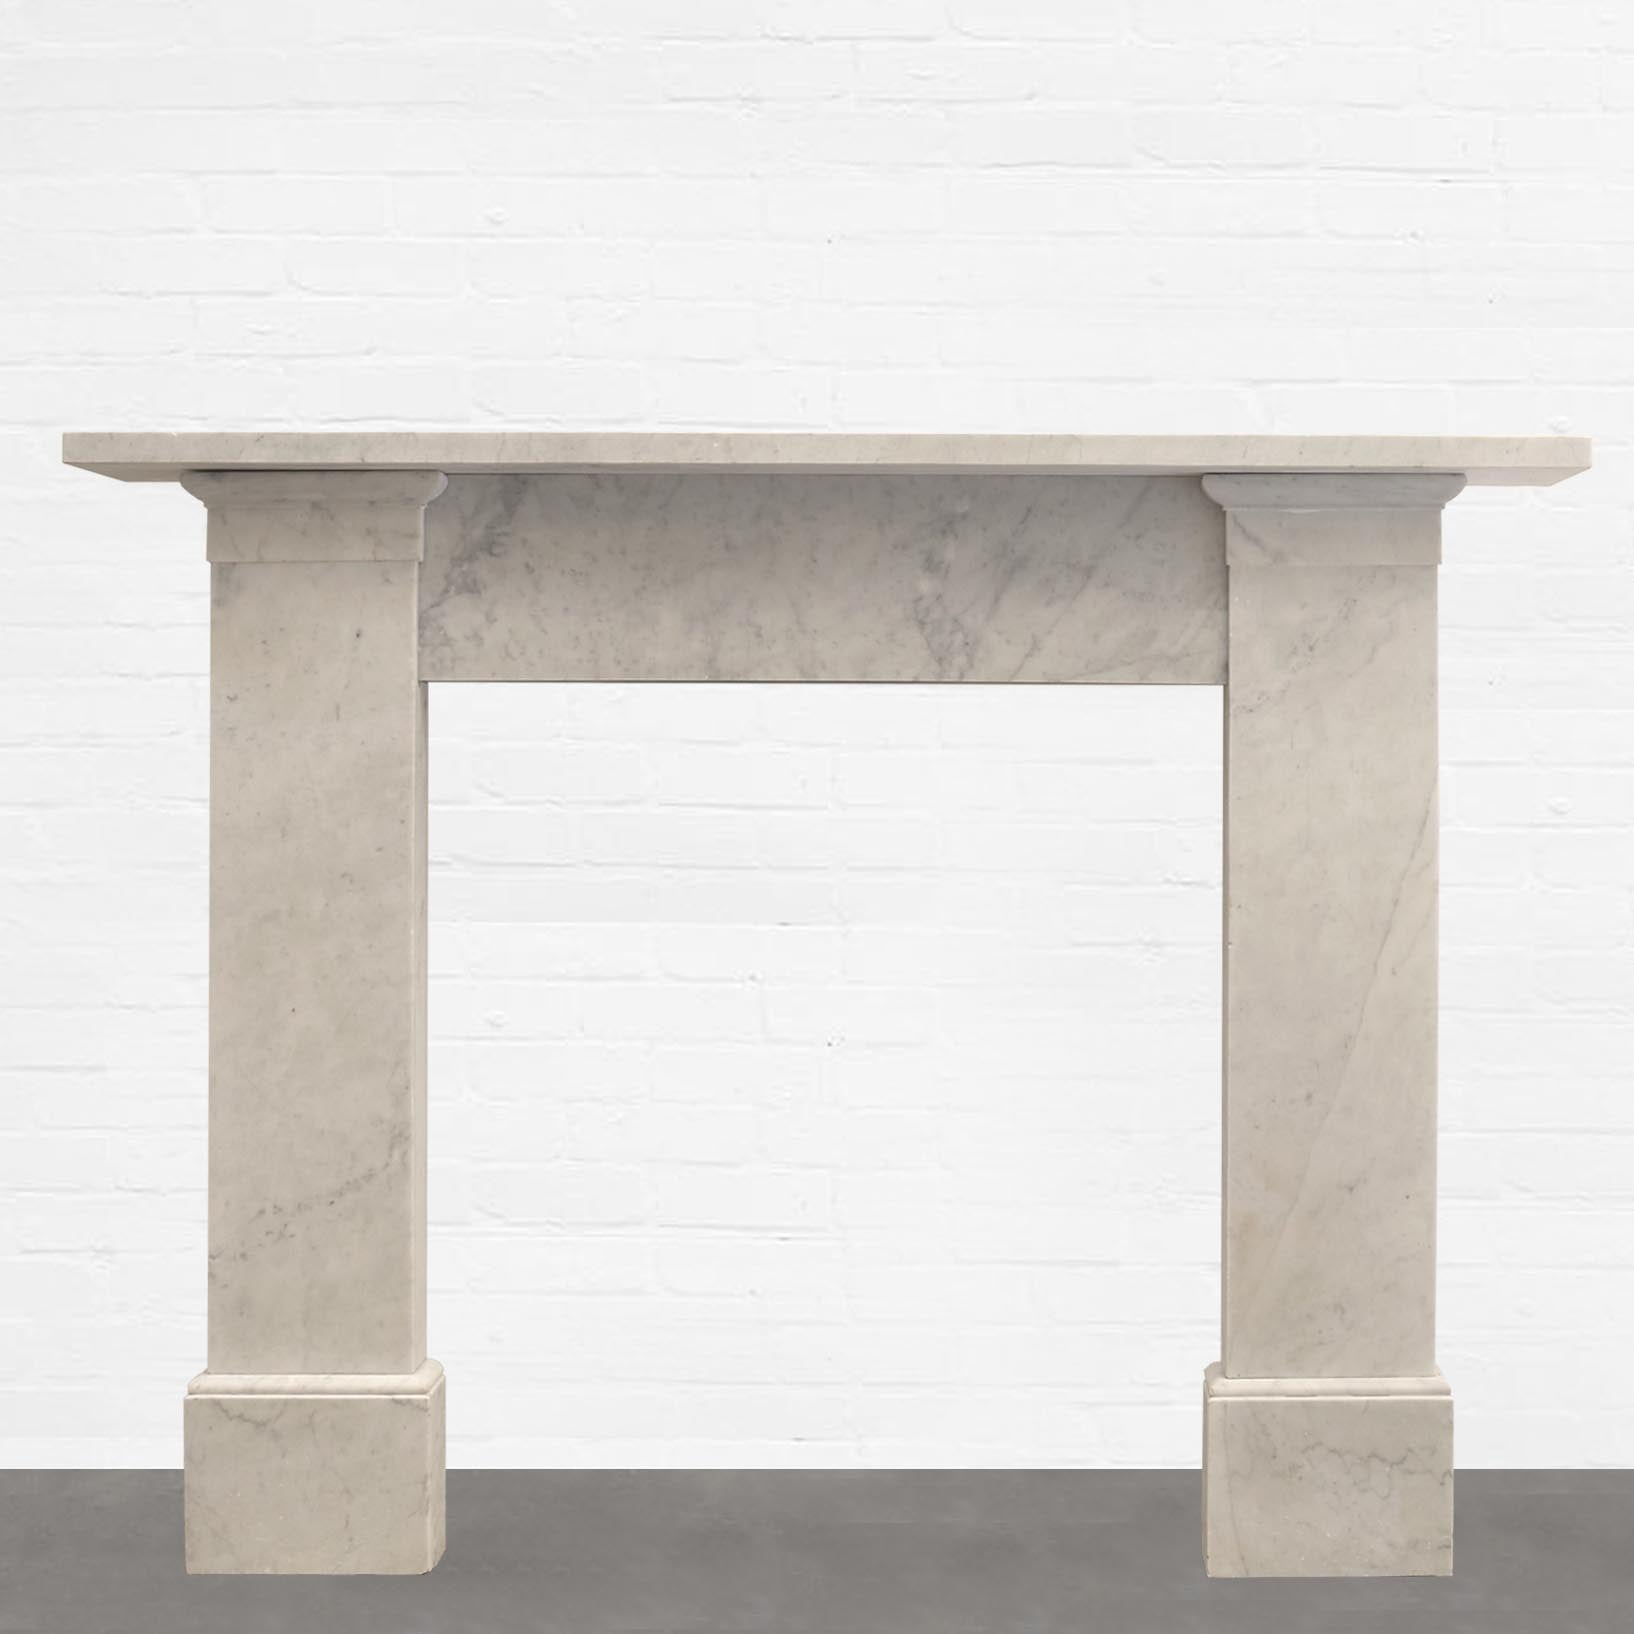 Victorian Carrara Marble Surround